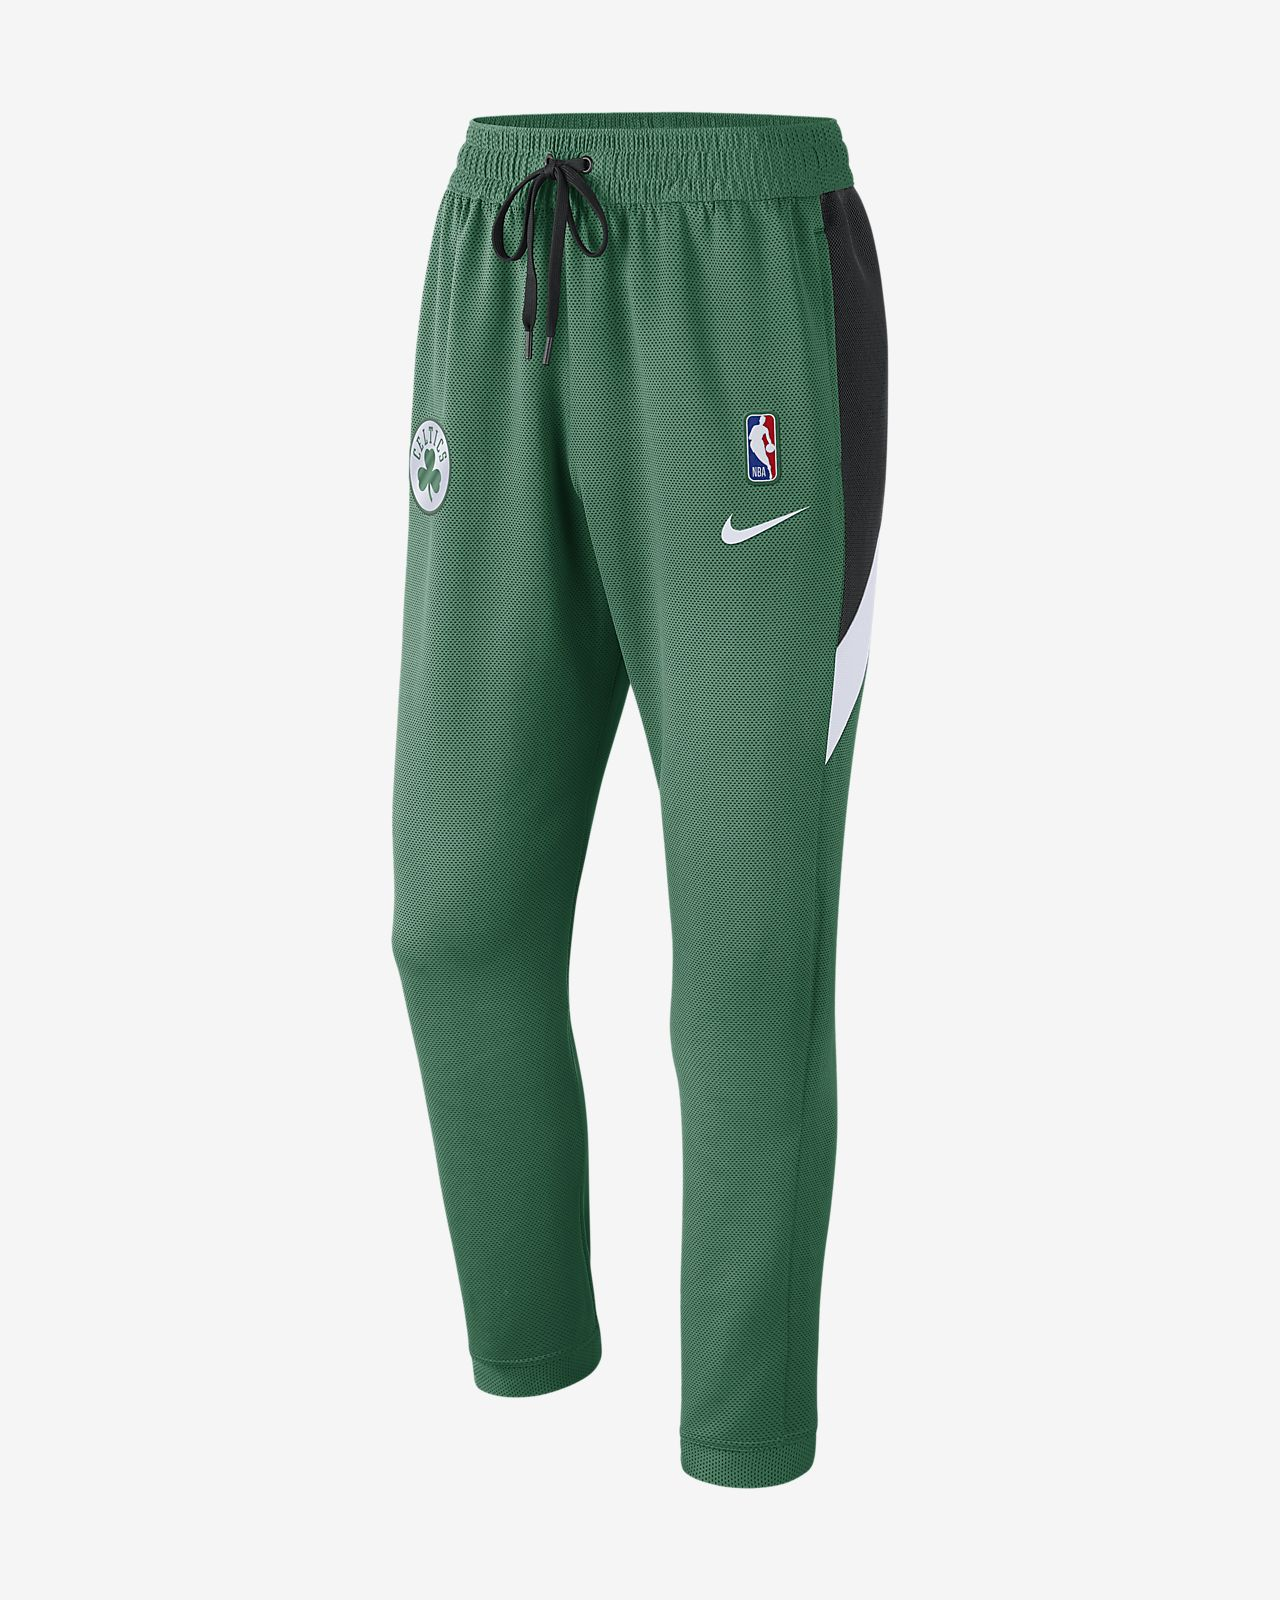 Boston Celtics Nike Therma Flex Showtime NBA-s férfinadrág